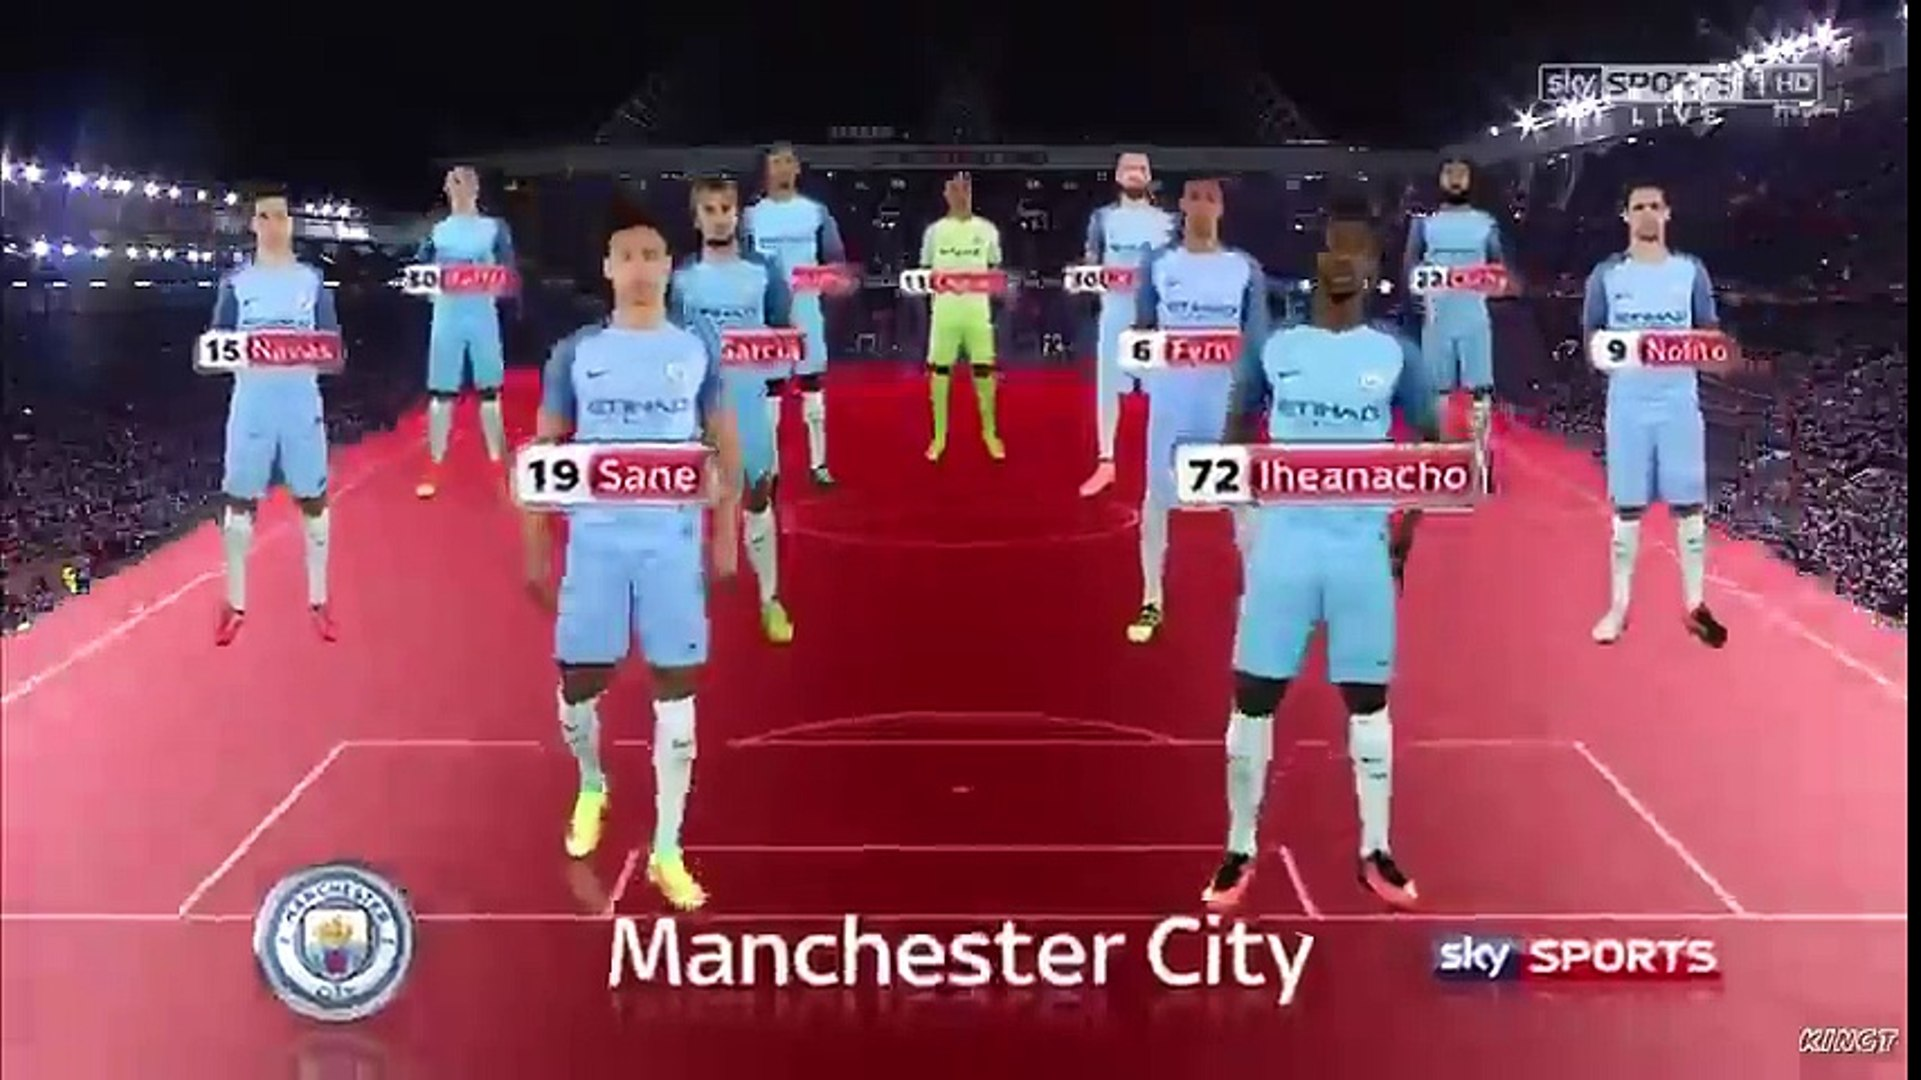 Manchester united vs Manchester city Match highlights,SPORTS WORLD